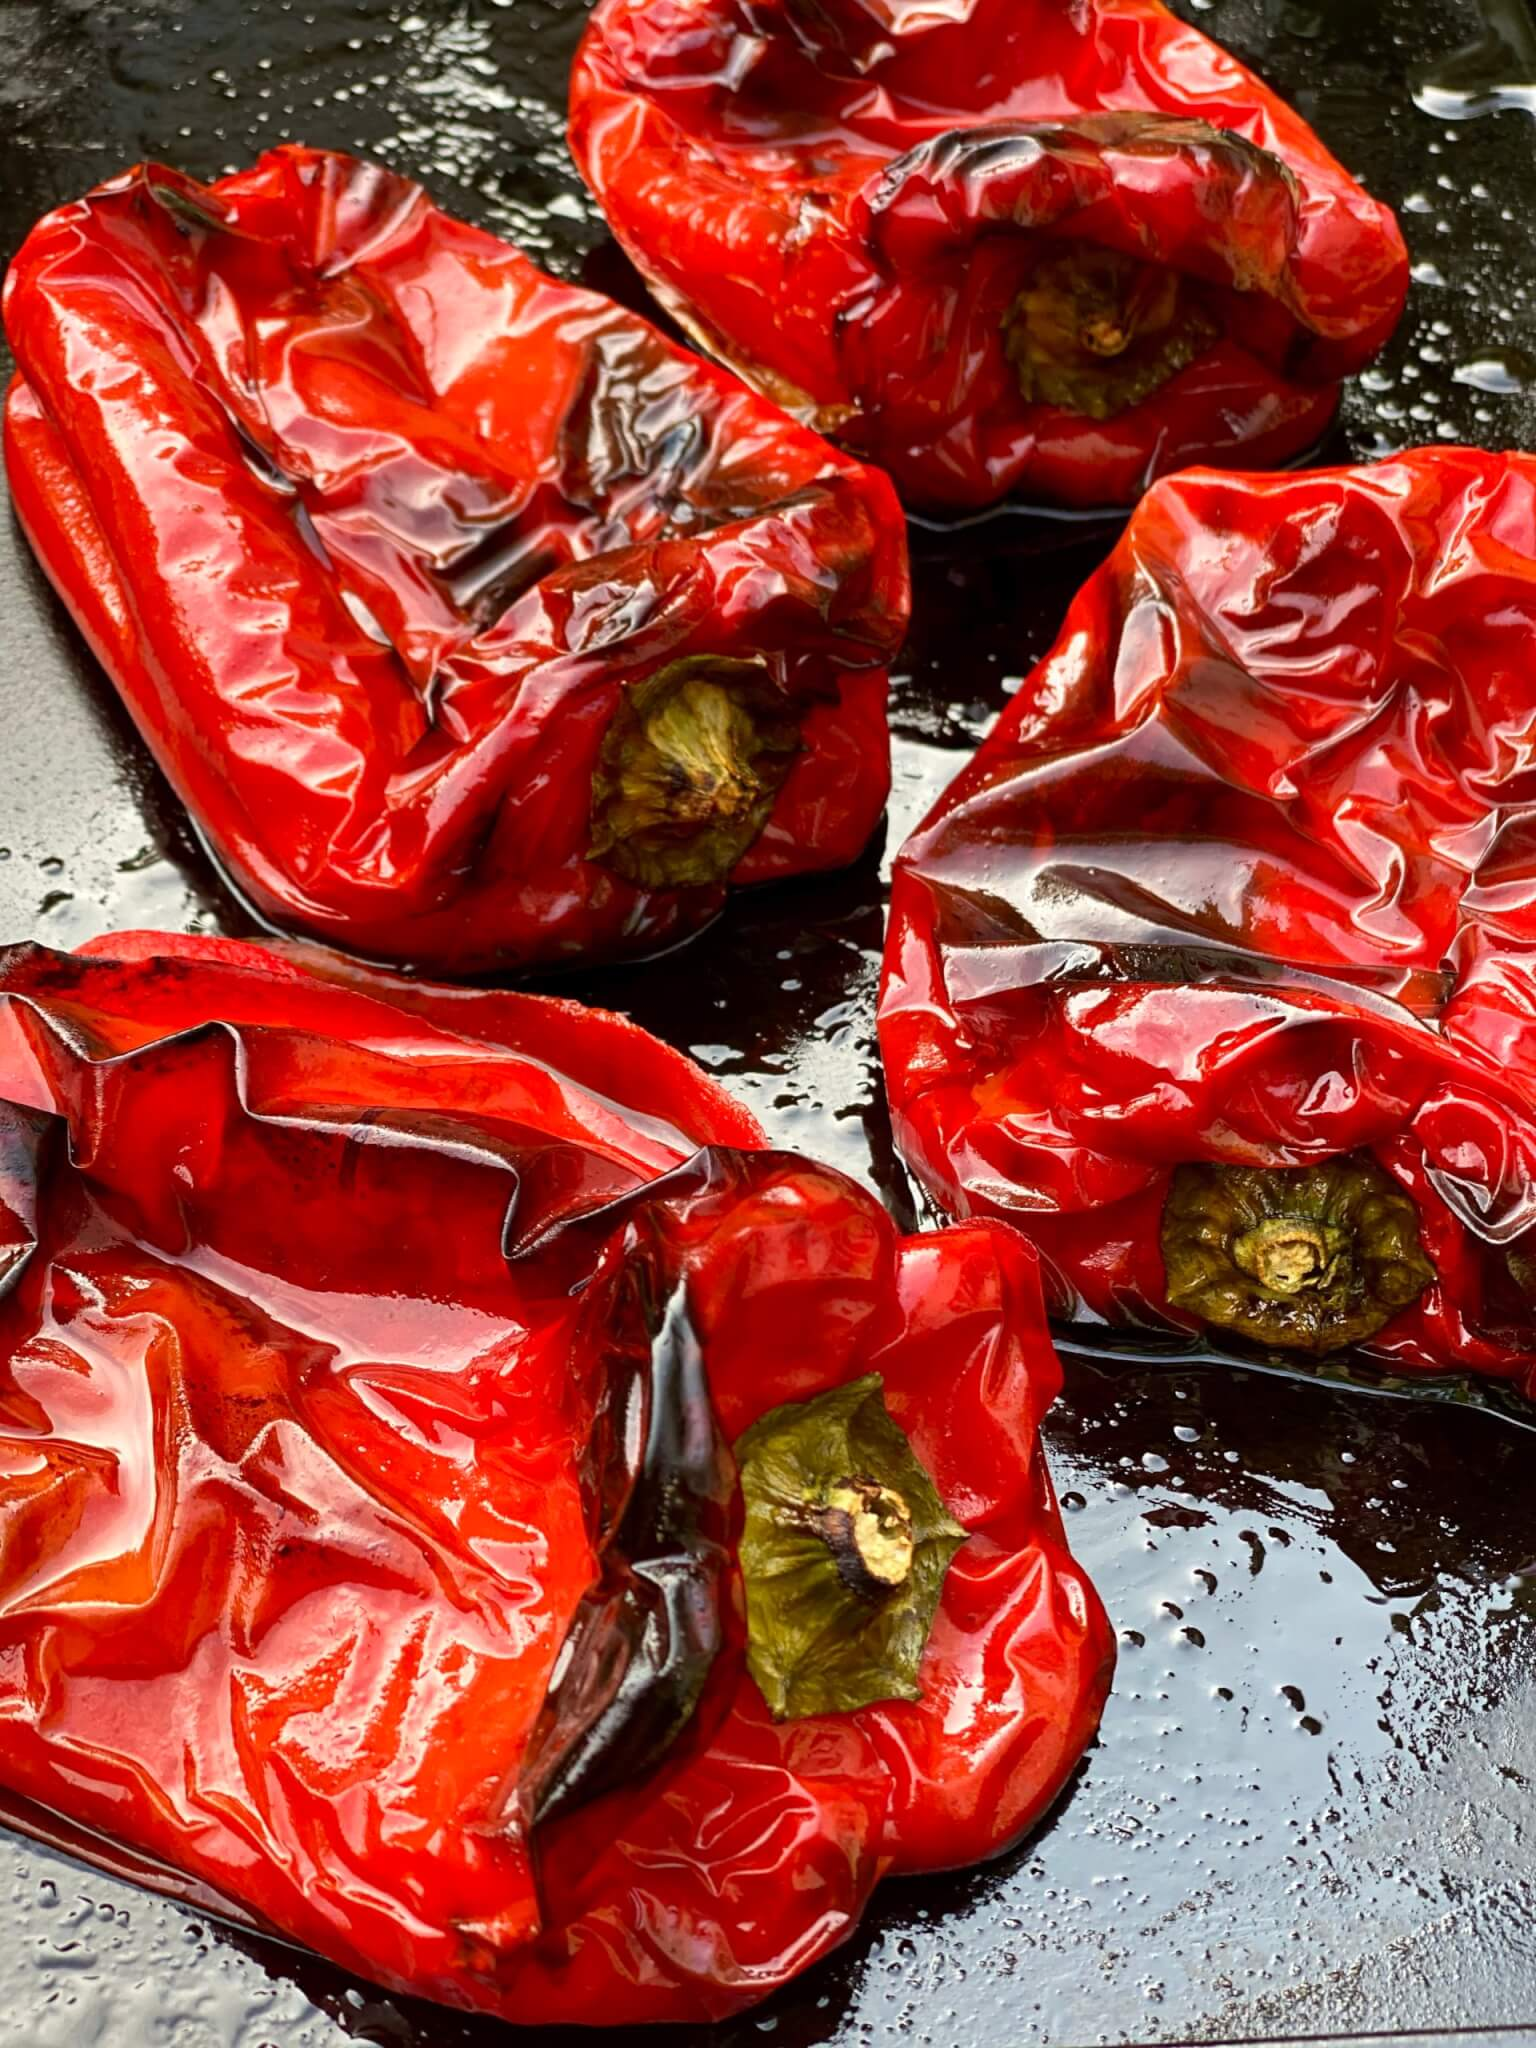 Simple to make yourself! While it is traditional to roast red peppers, any type of pepper can be roasted, including yellow, green, or hot peppers such as jalapeños.